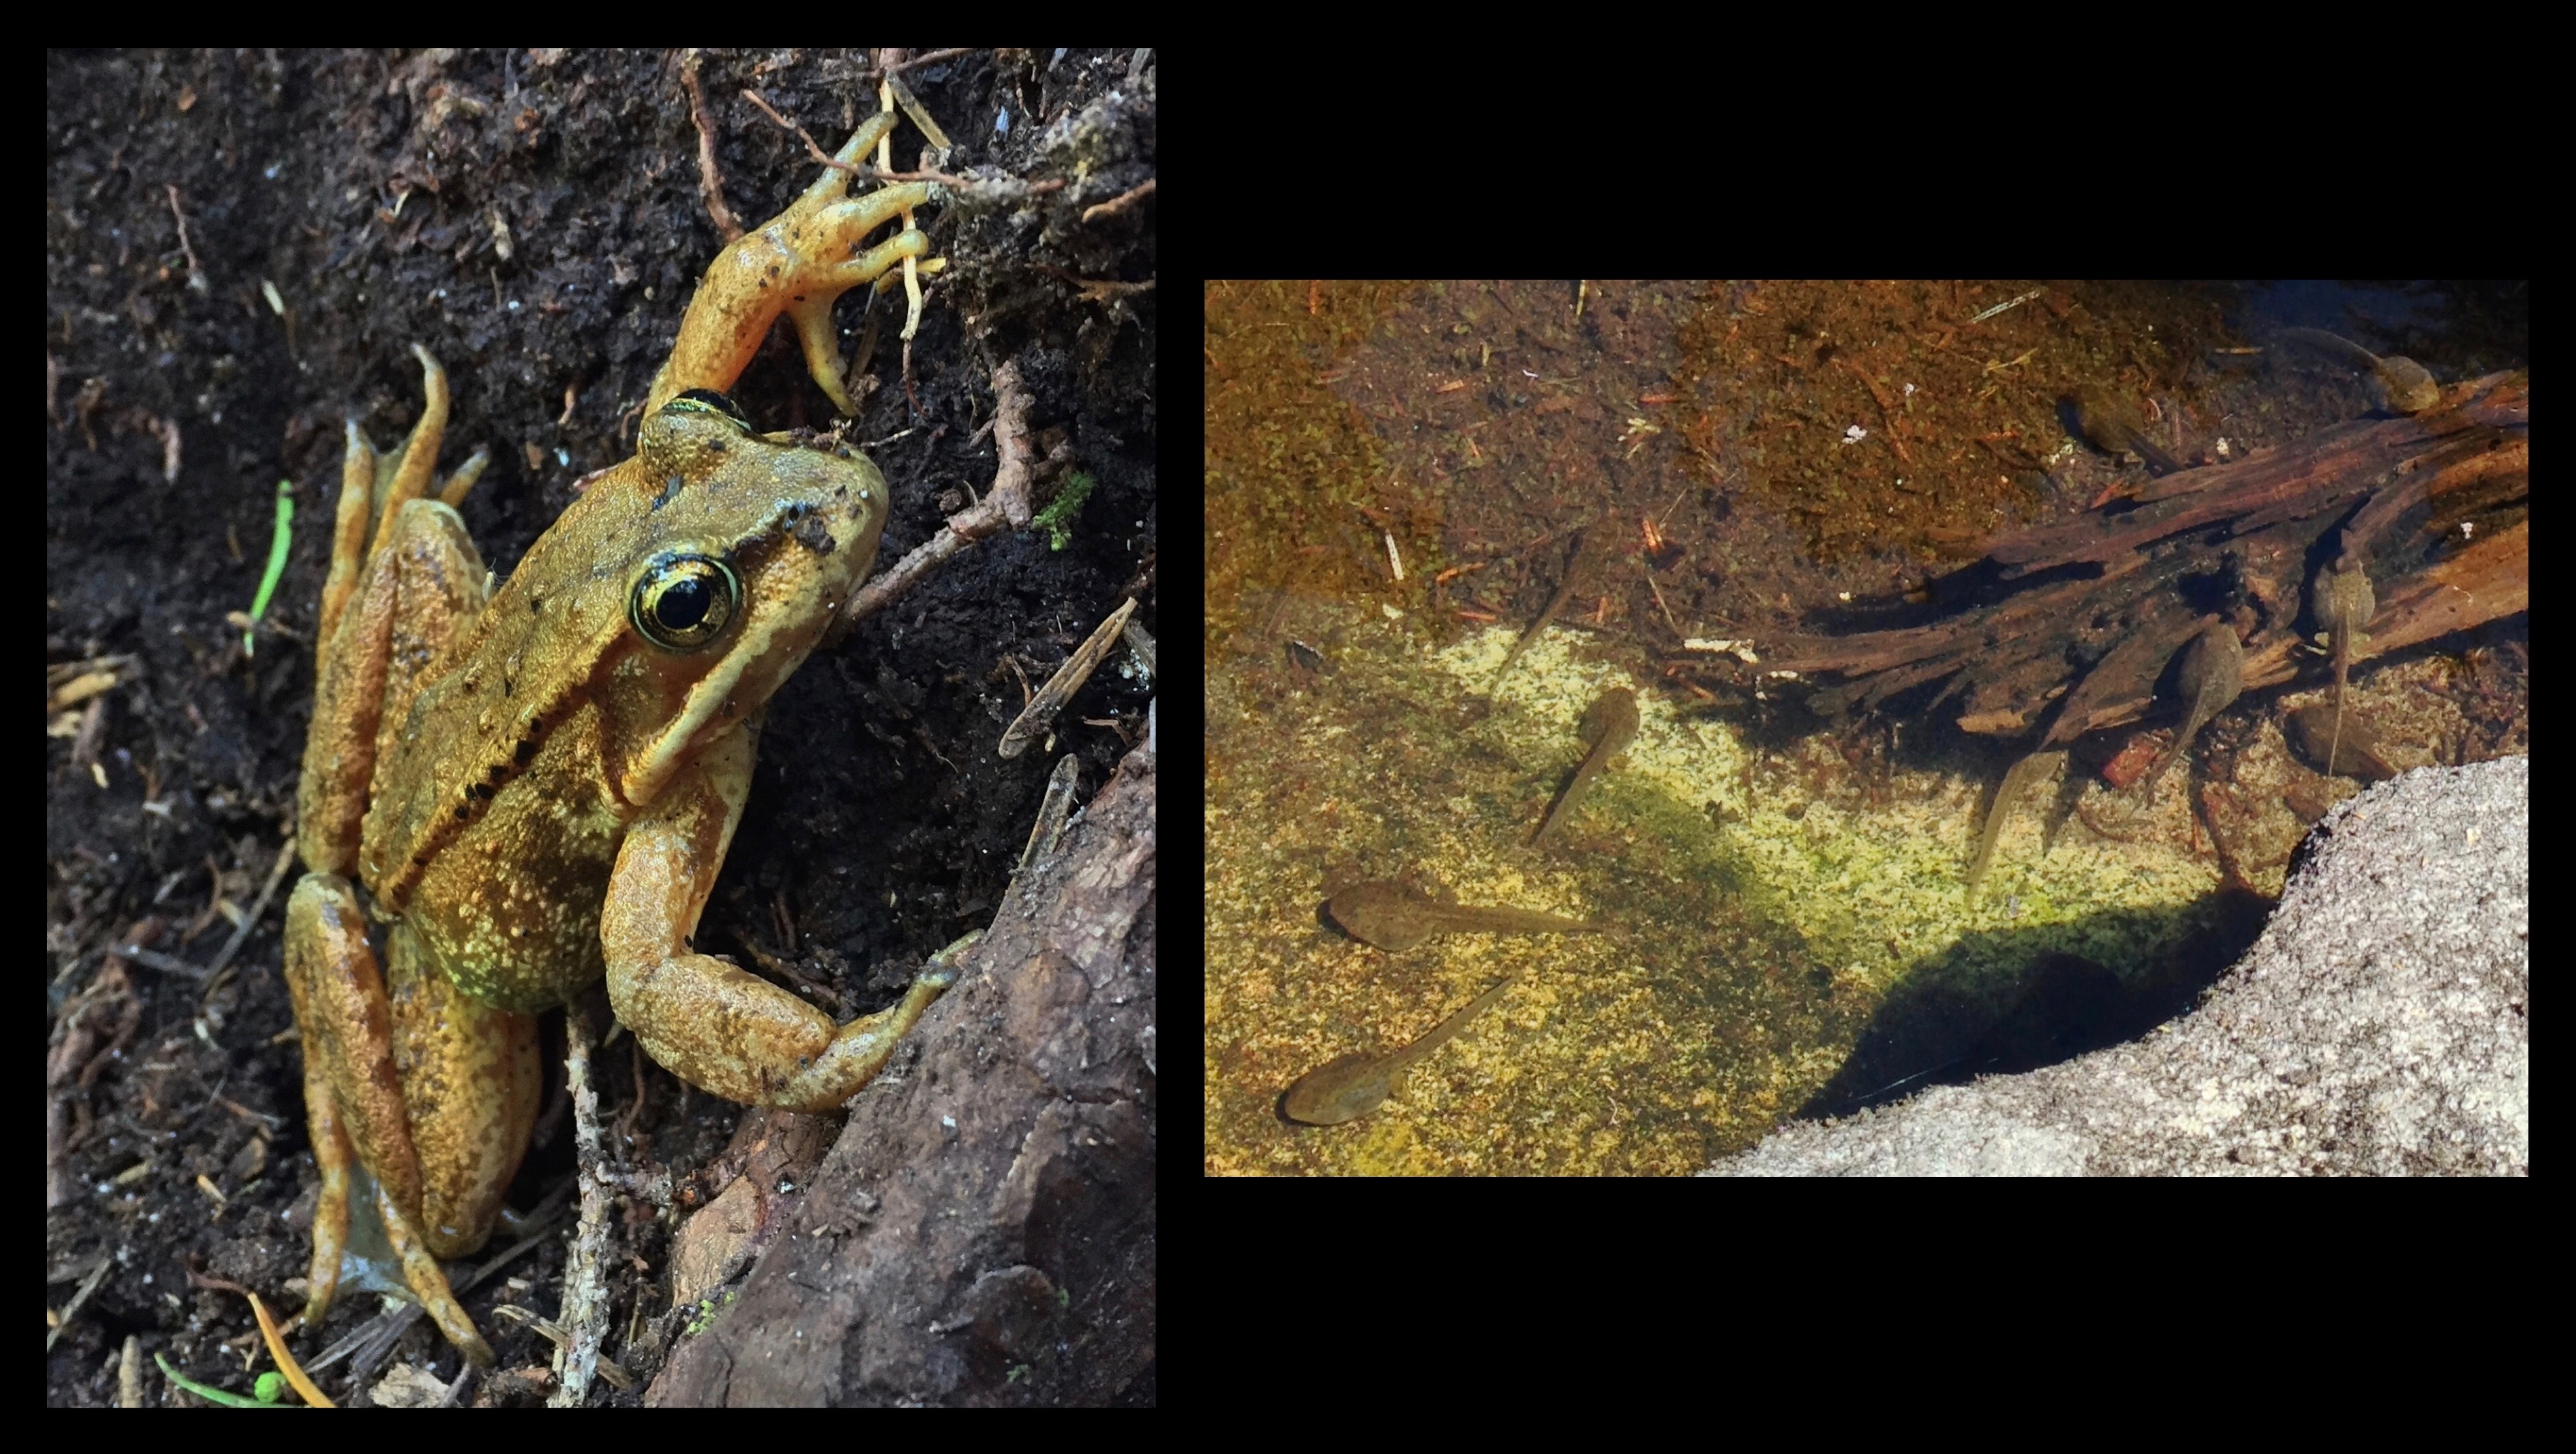 Frogs, here likely a Cascades frog (Rana cascadae), are abundant in the Alpine Lakes Wilderness, fattening lazily as tadpoles in its warm summer bogs, ponds, and shallow lakes. Ira Spring Trail, July 02, 2016 and August 10, 2014.